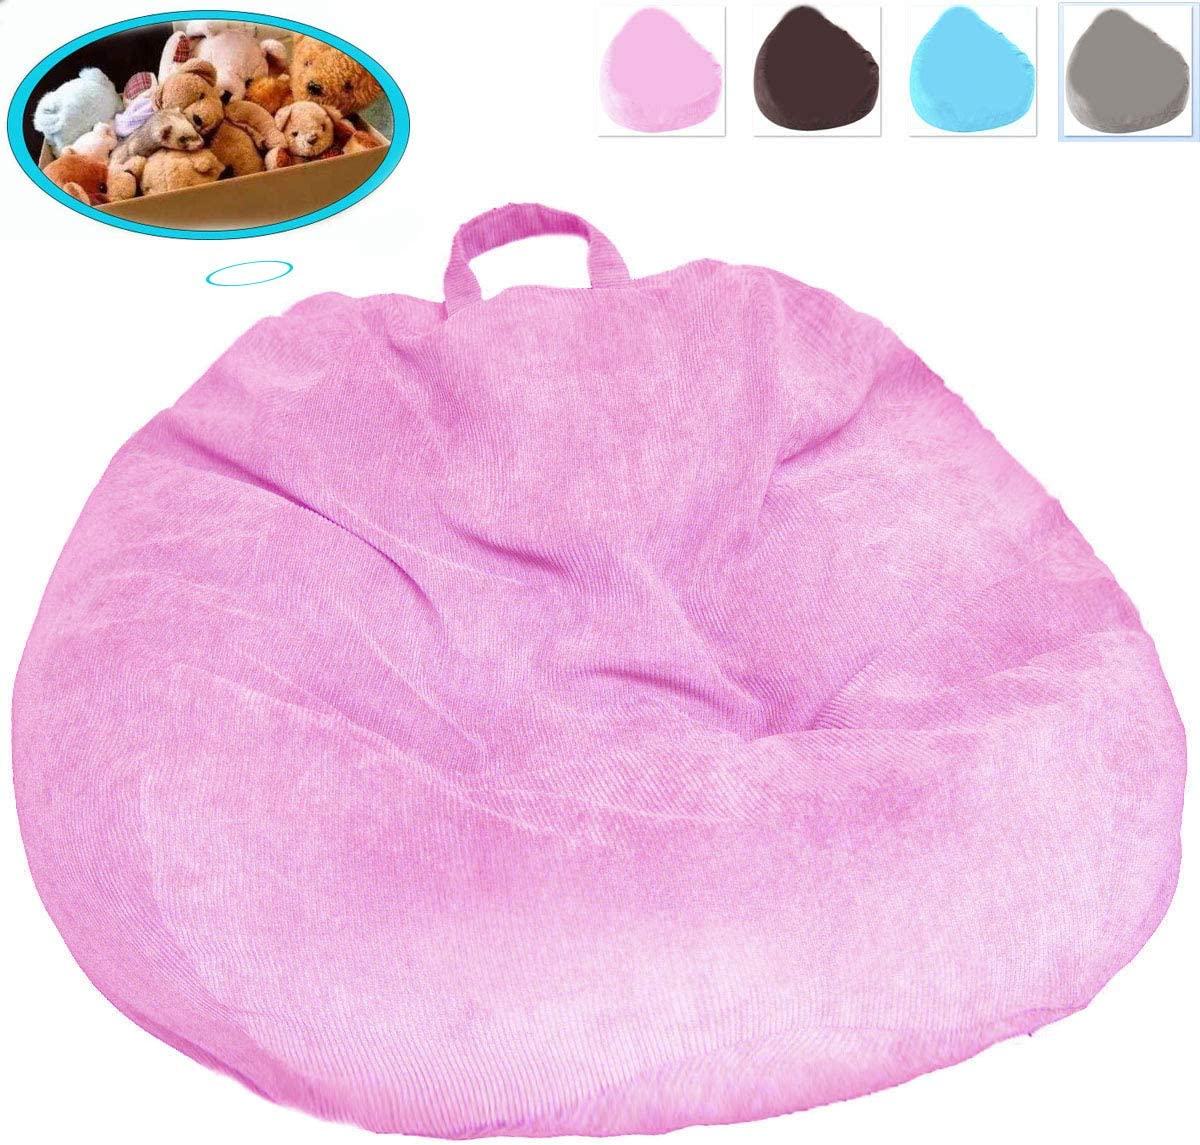 Bean Bag Chair No Filler , Ultra Soft Premium Corduroy Bean Bag Covers Extra Sturdy Zipper and Double Suture for Organizing Children Plush Toys or Memory Foam, for Kids and Adults